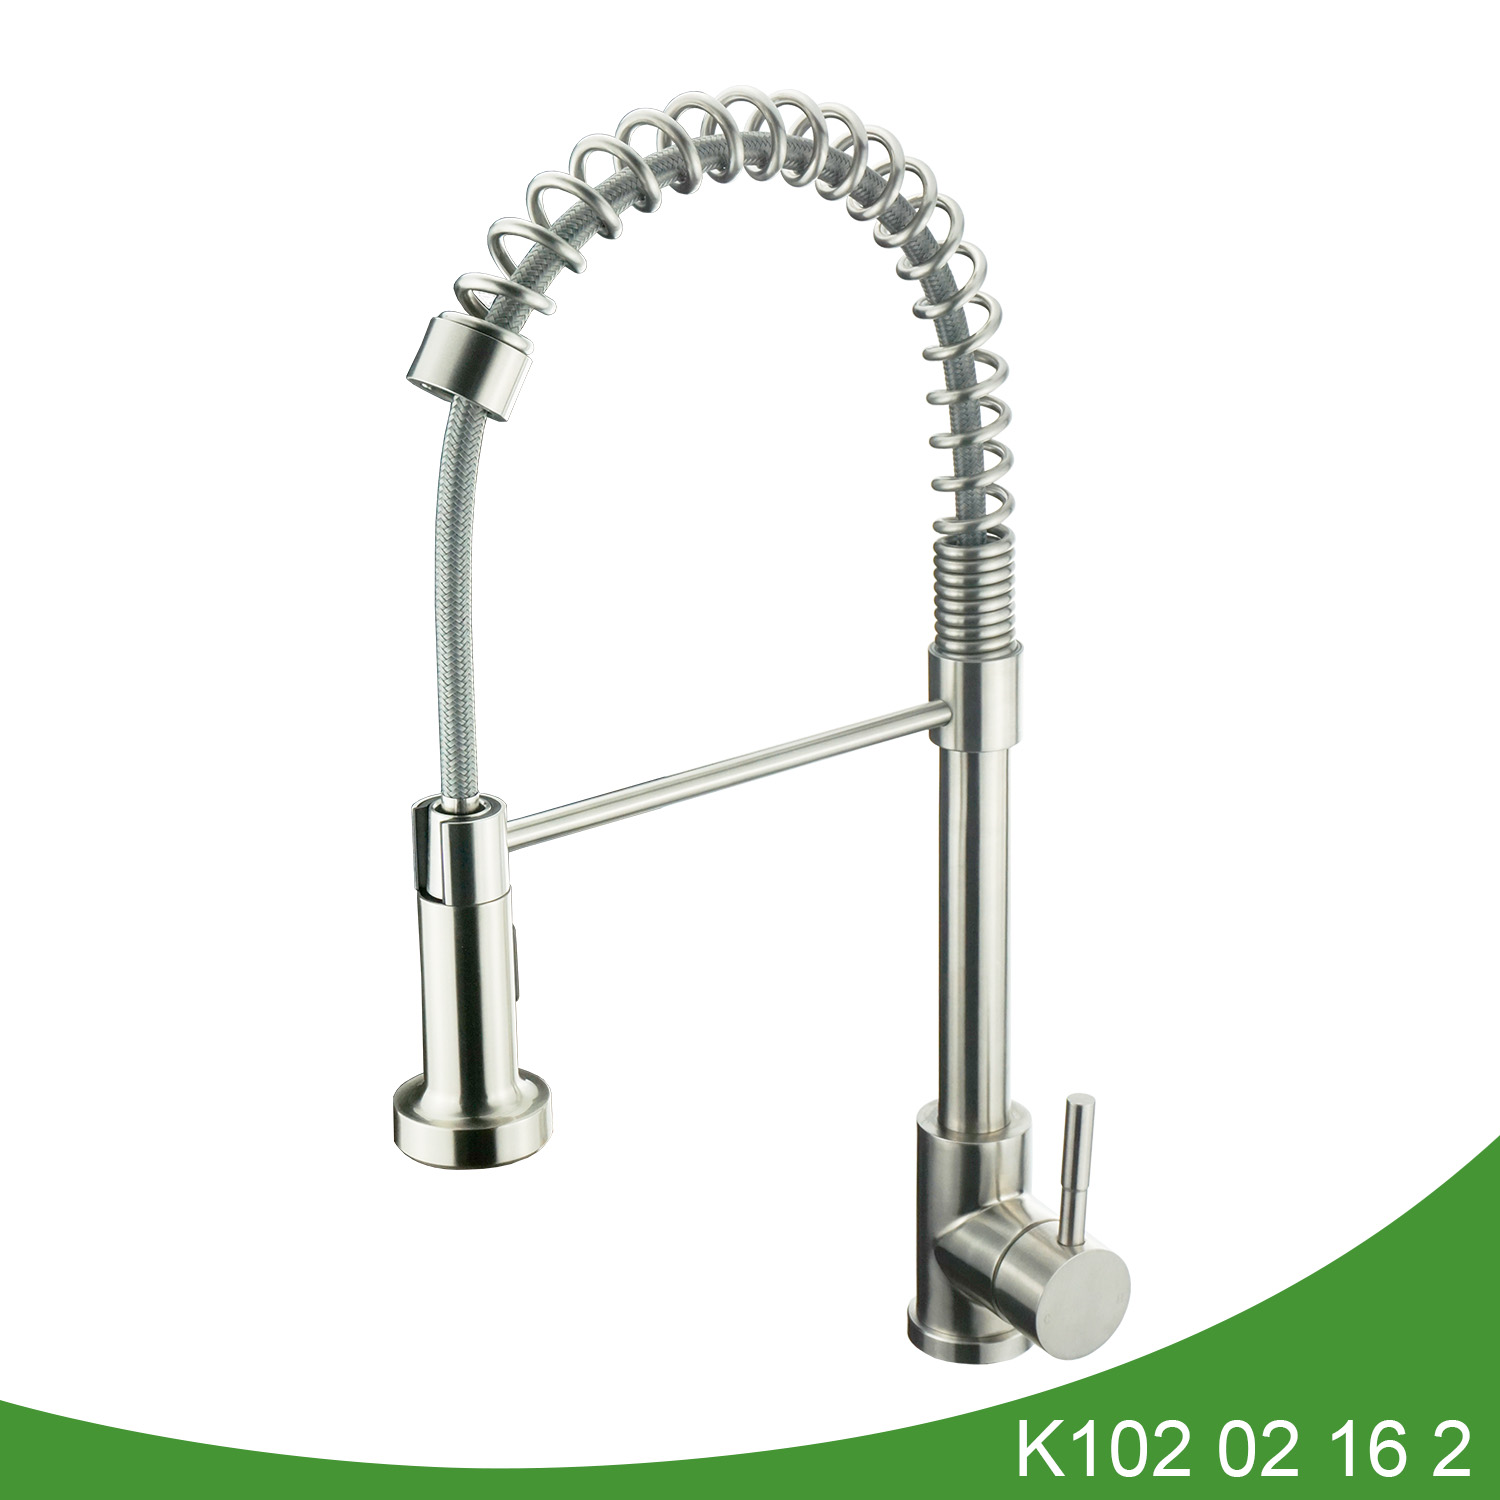 stainless steel pull down kitchen tap K102 02 16 2